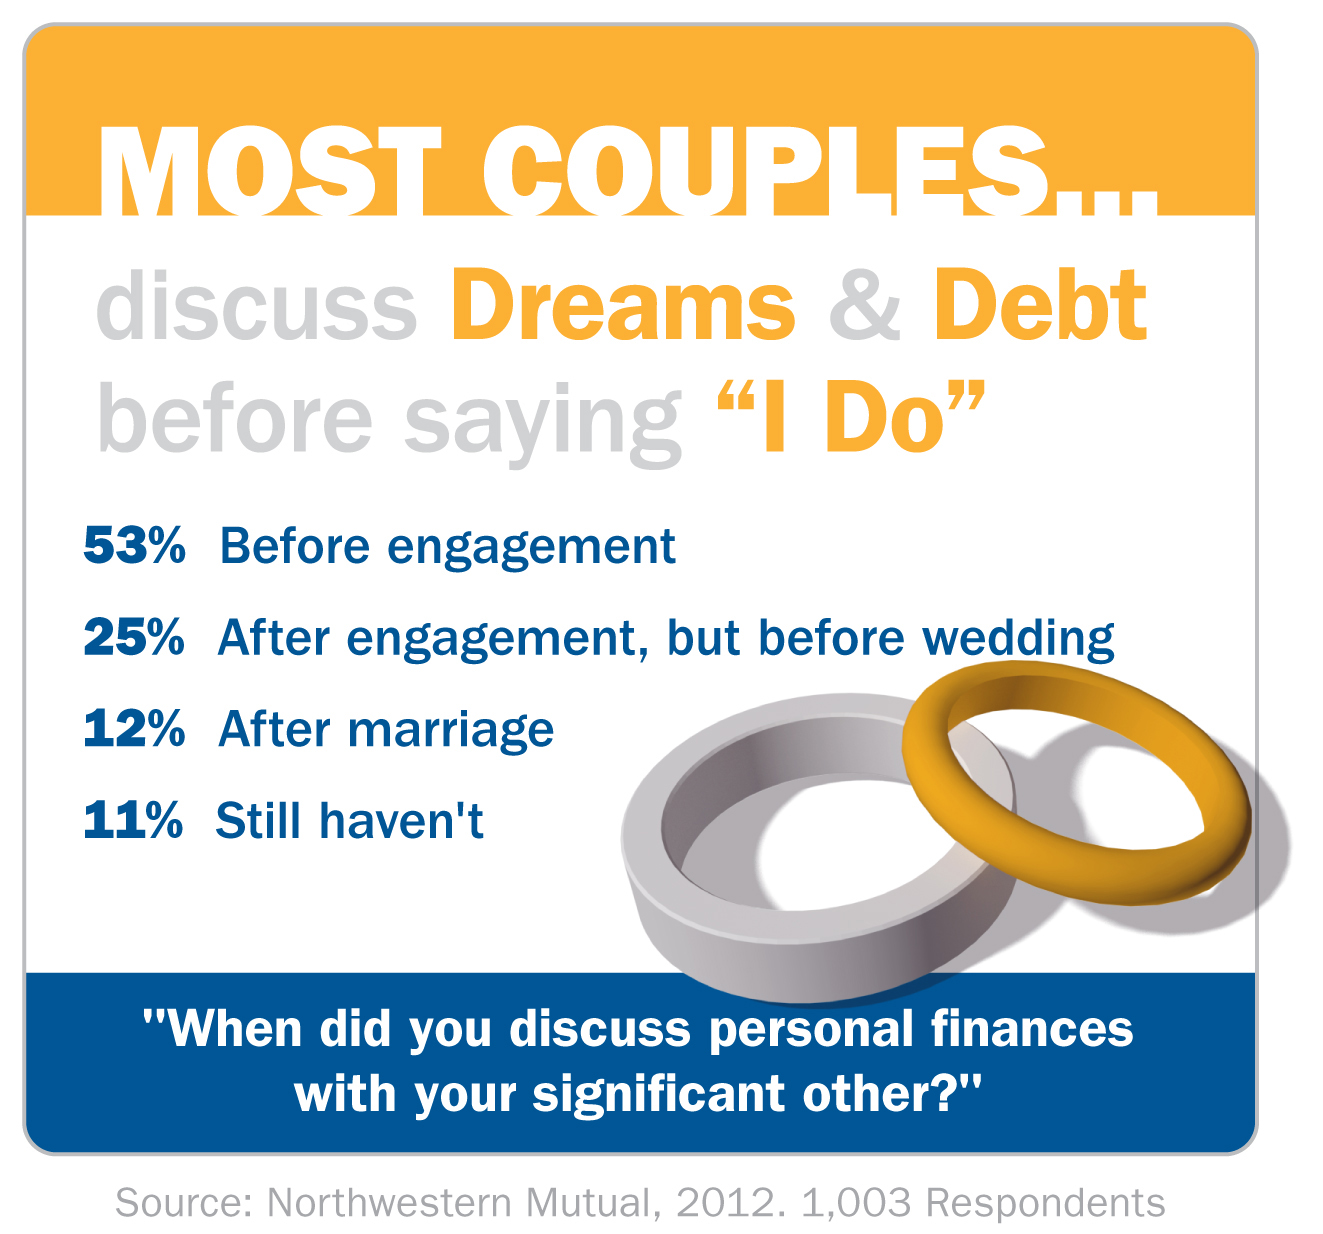 Statistic on Discussing Finances with Spouse